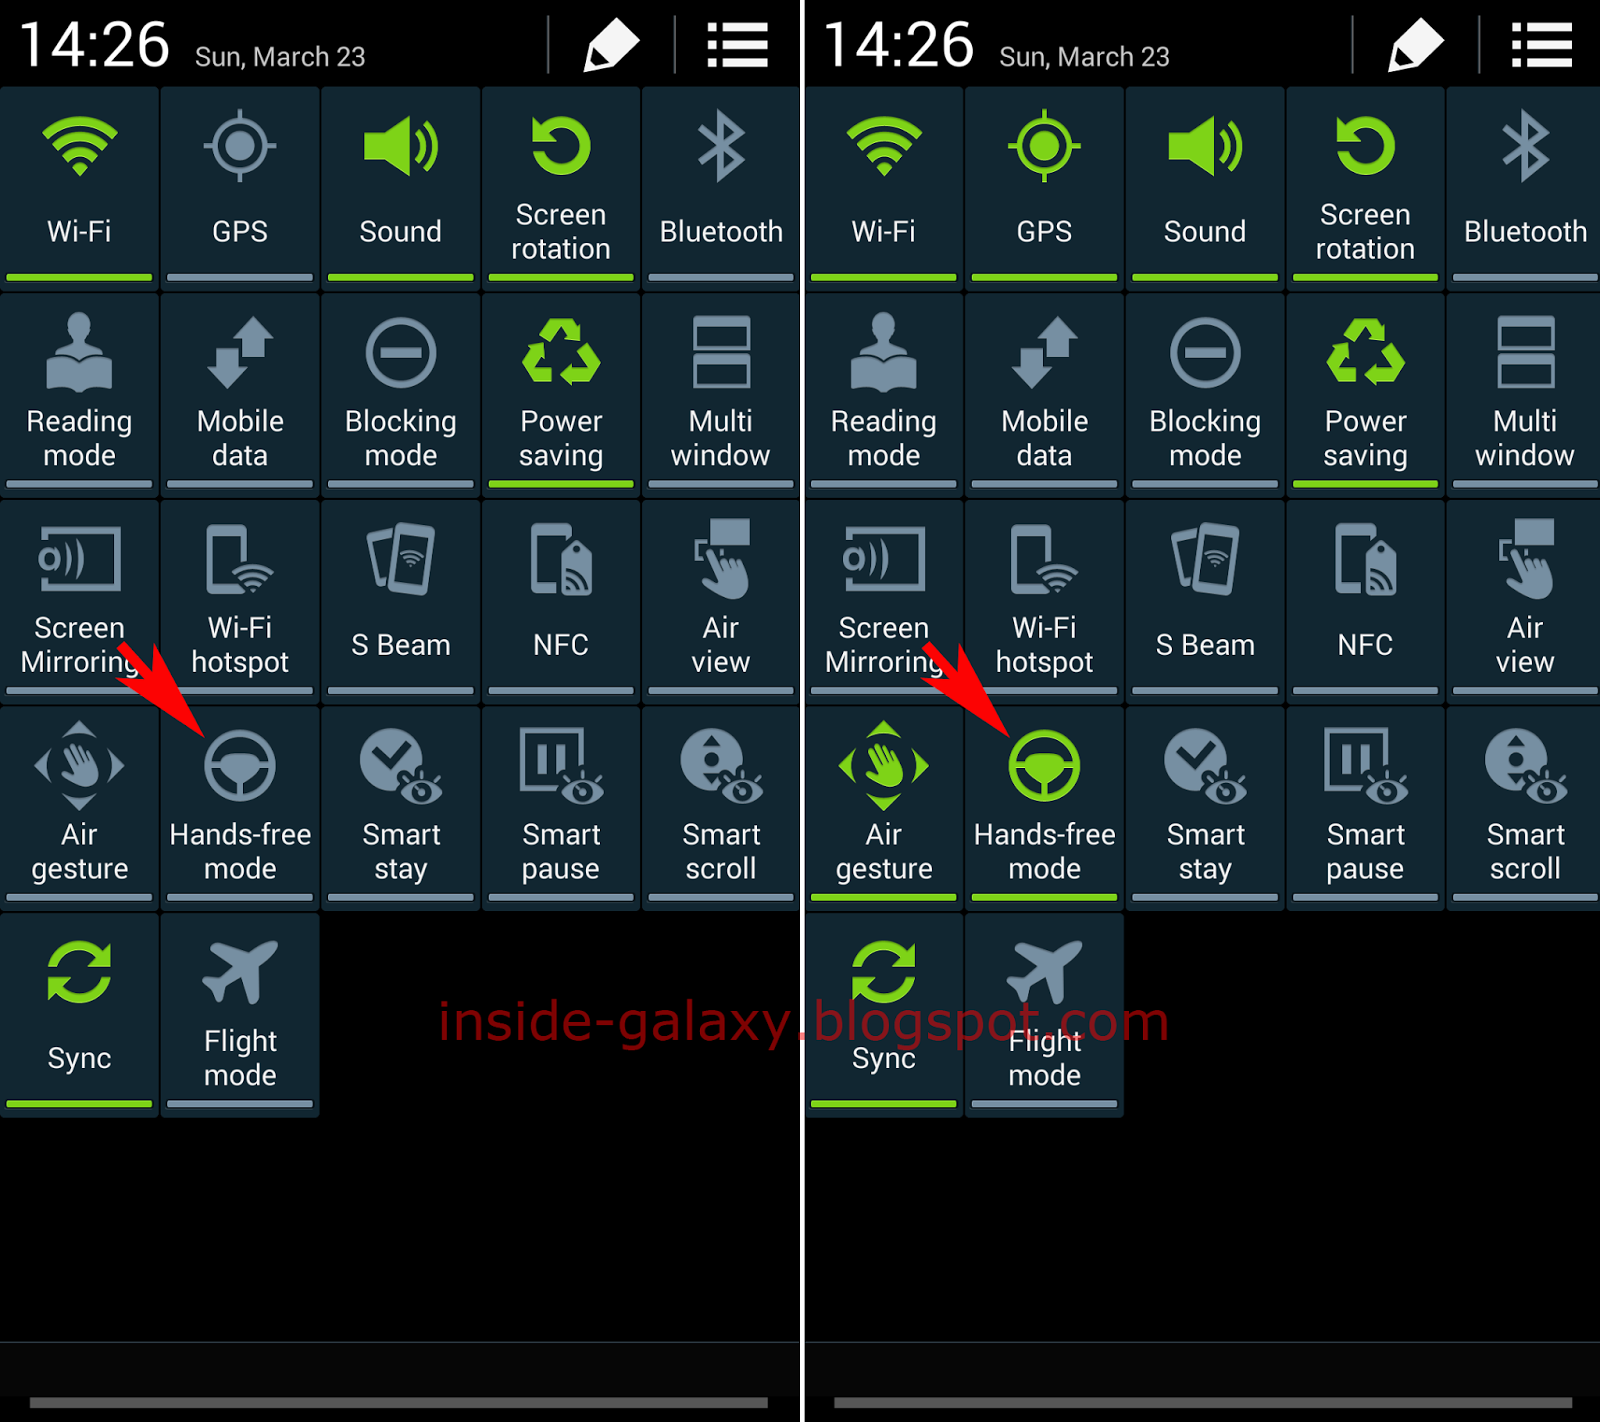 Inside Galaxy: Samsung Galaxy S4: How To Enable, Disable